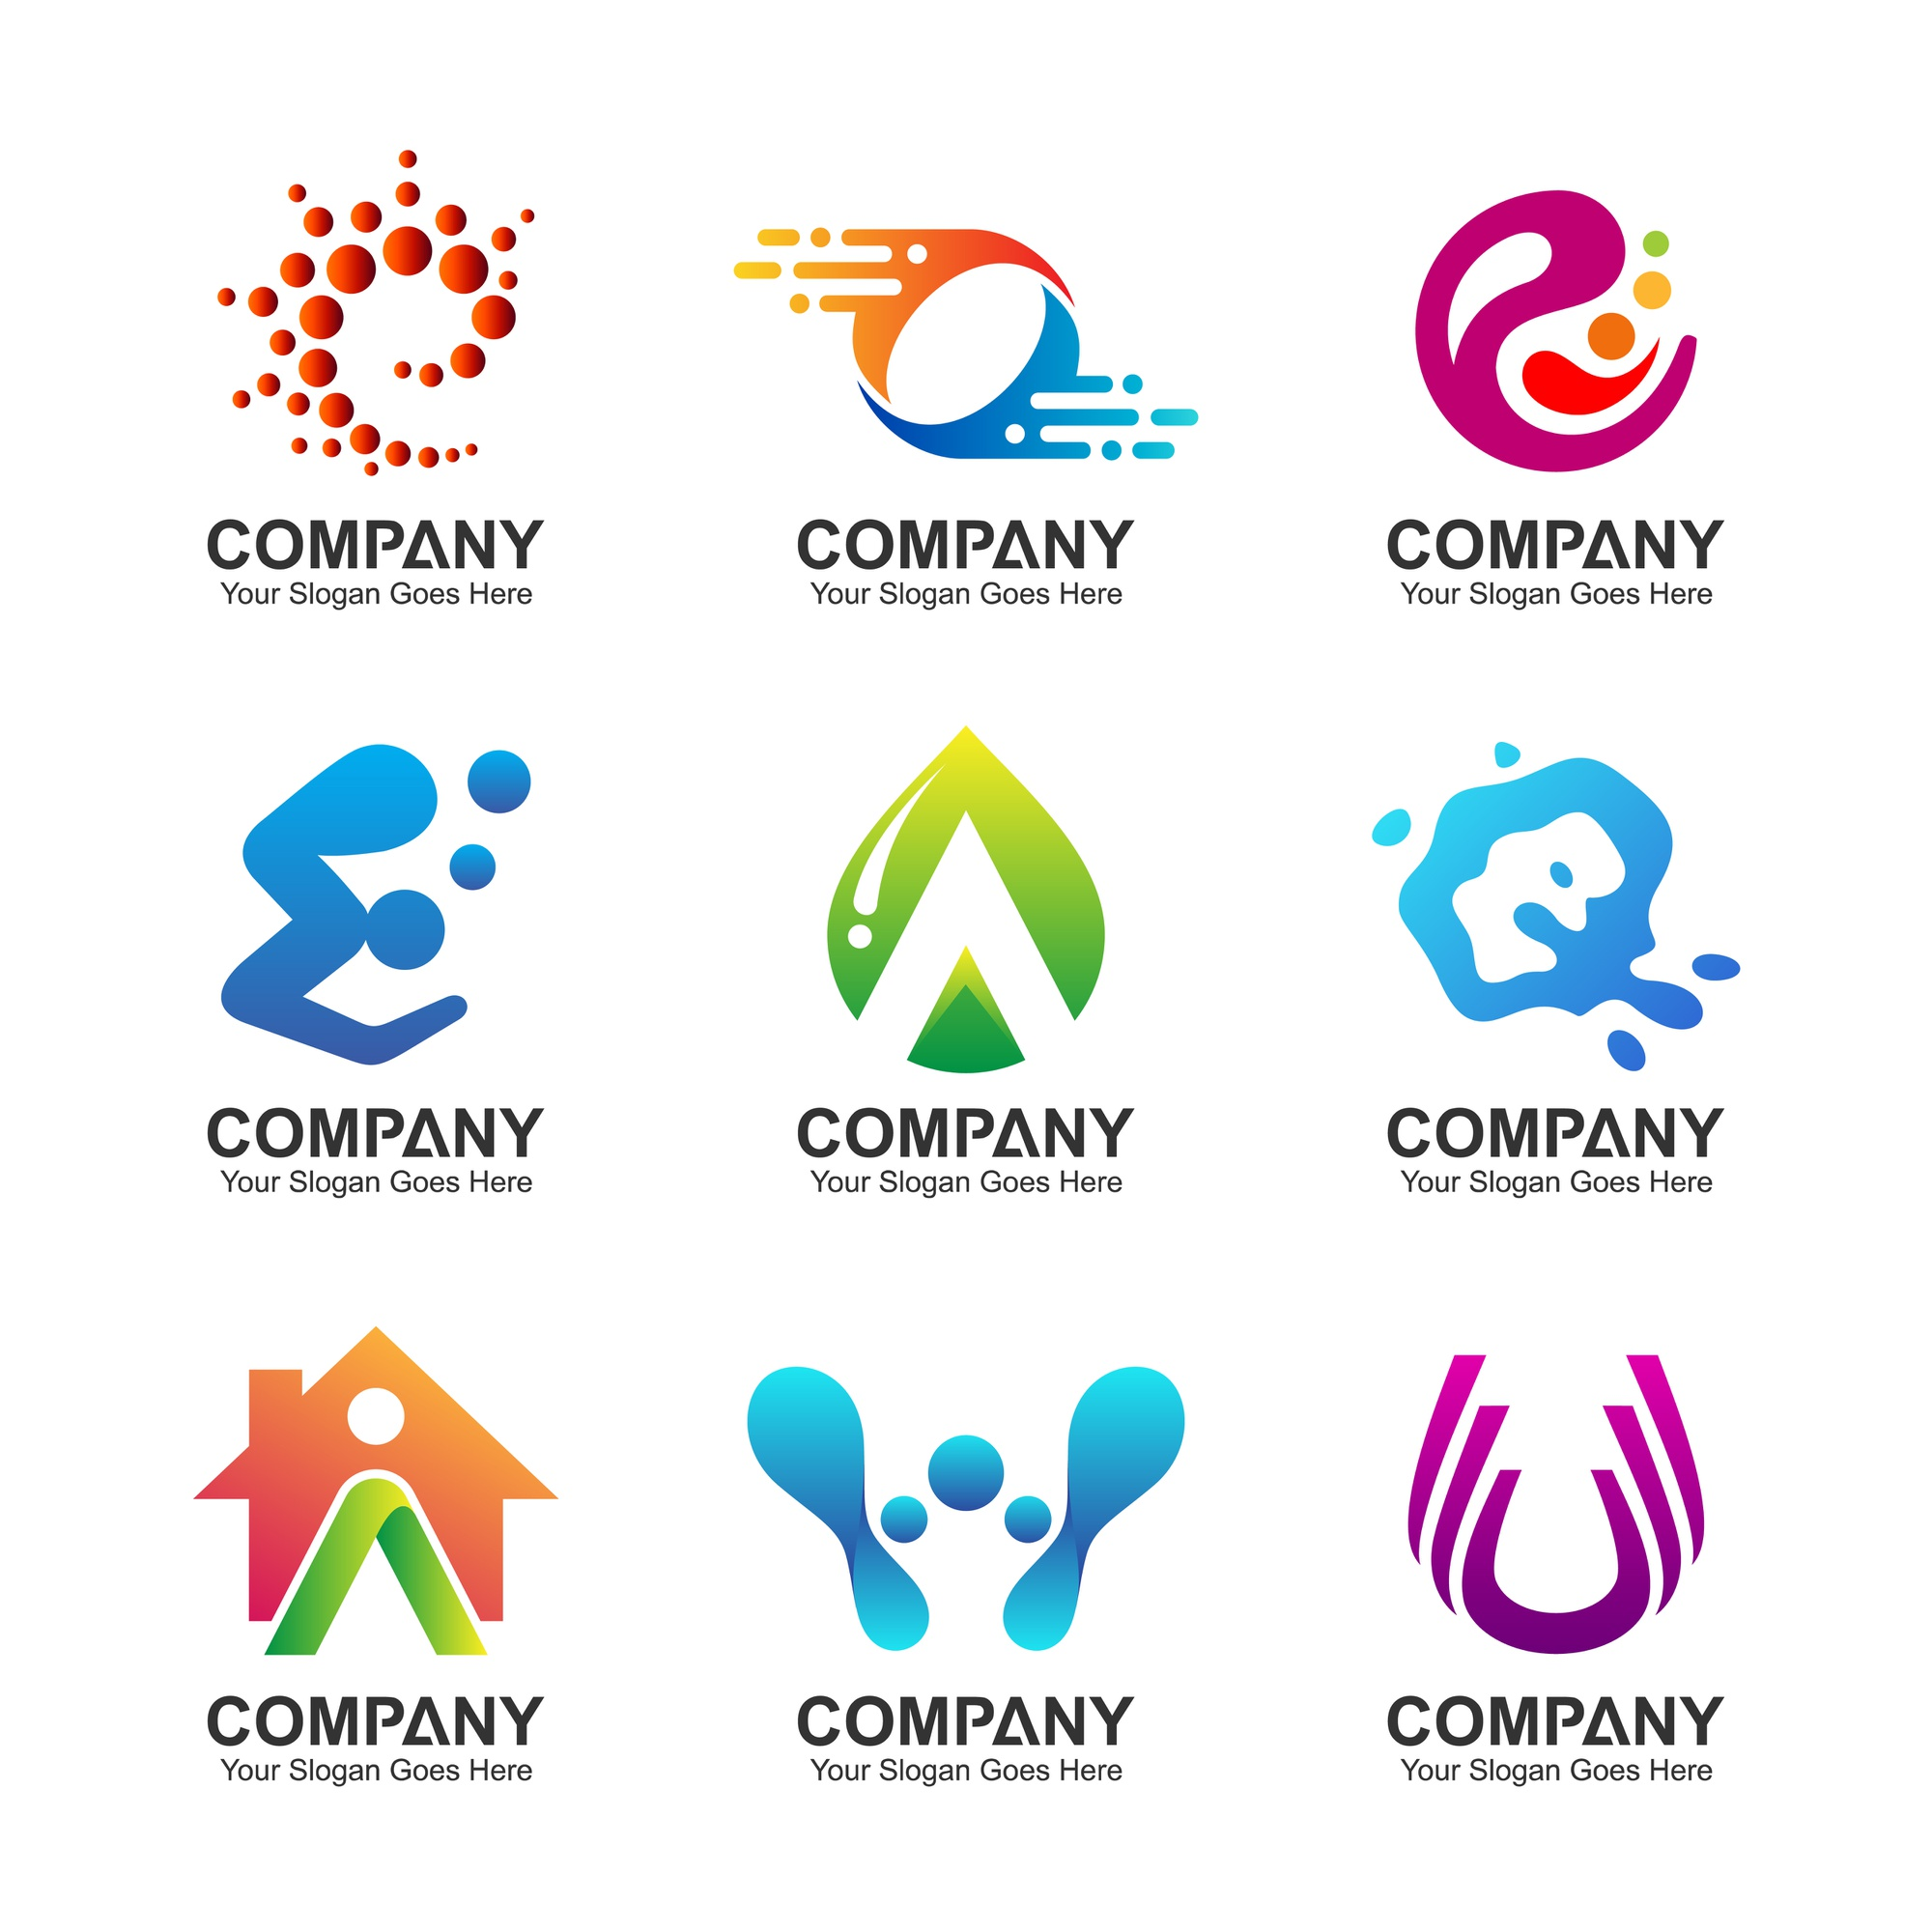 Abstract business logo set, corporate identity icons